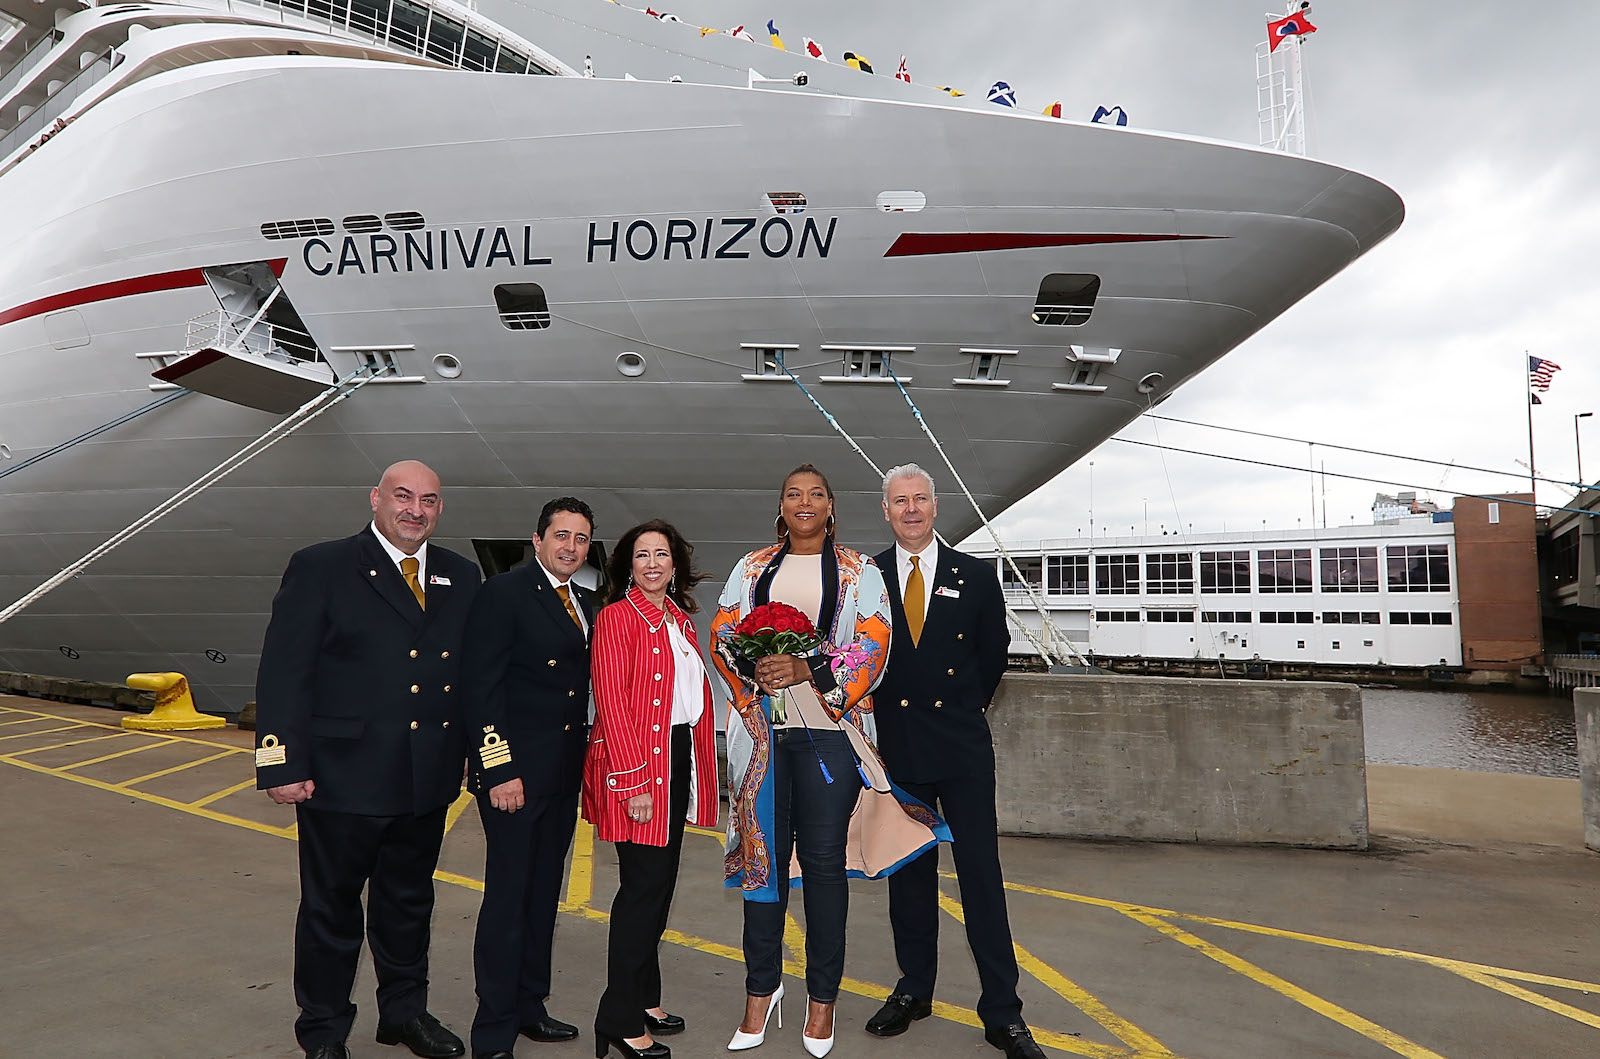 Pierre Camelleri, Luigi De Angelis, Carnival President Christine Duffy, Queen Latifah and Rosario Capilli pose next to Carnival's newest ship during its U.S. debut and naming celebration for the Carnival cruise ship Horizon at Pier 88 on May 23, 2018